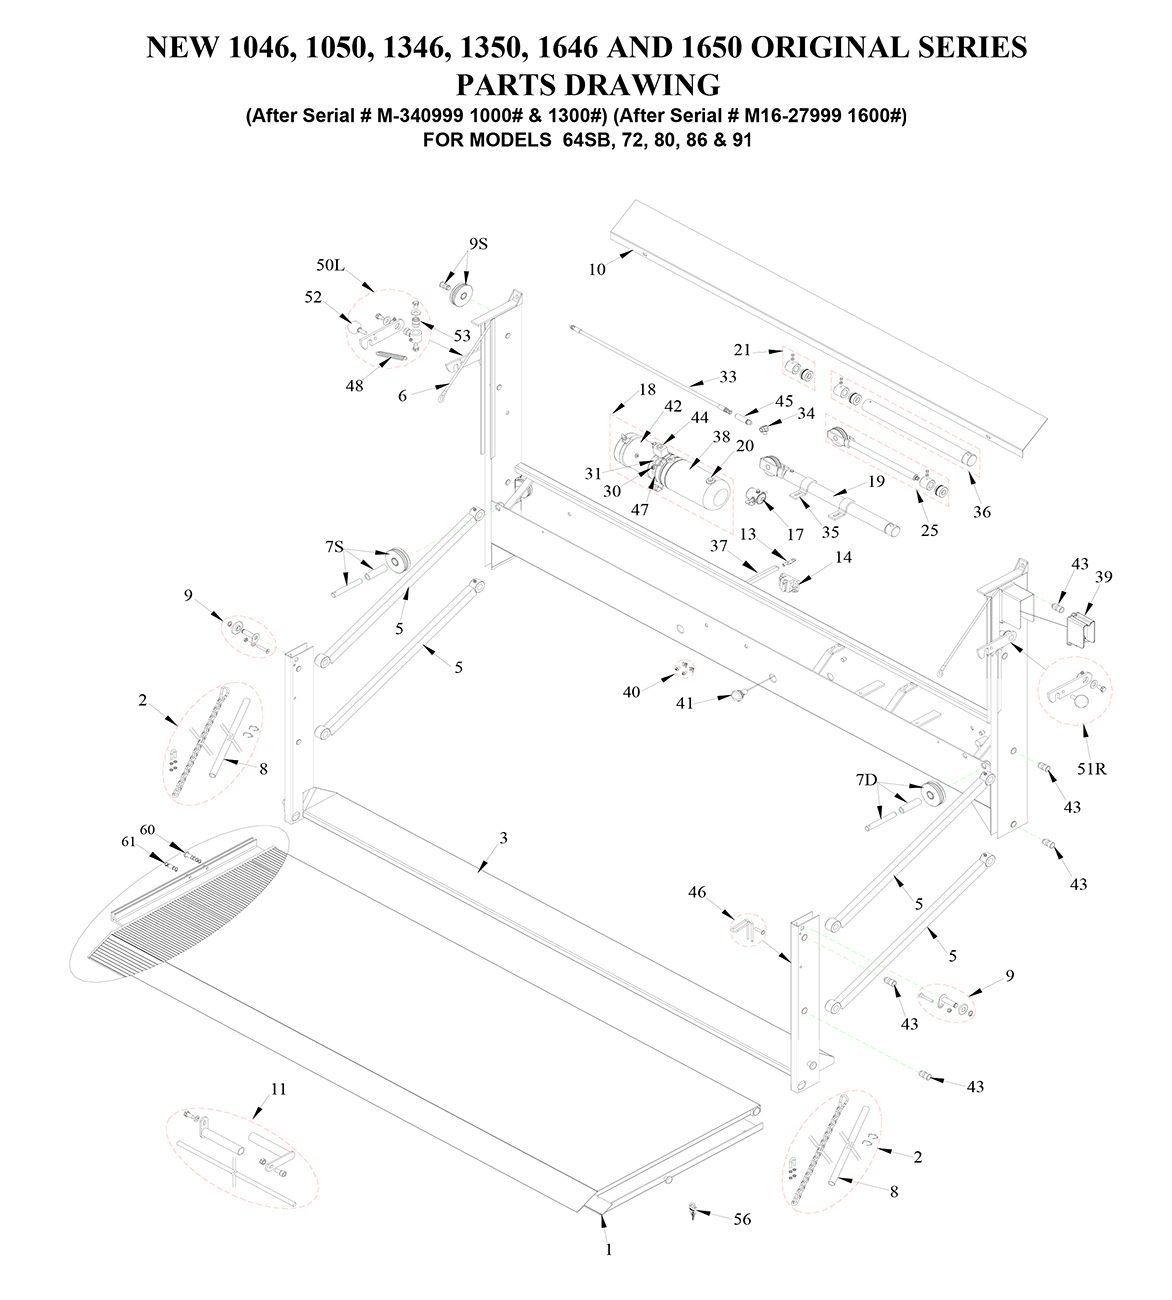 Tommy Gate Original Series Diagram [Flatbed, Stake & Van]